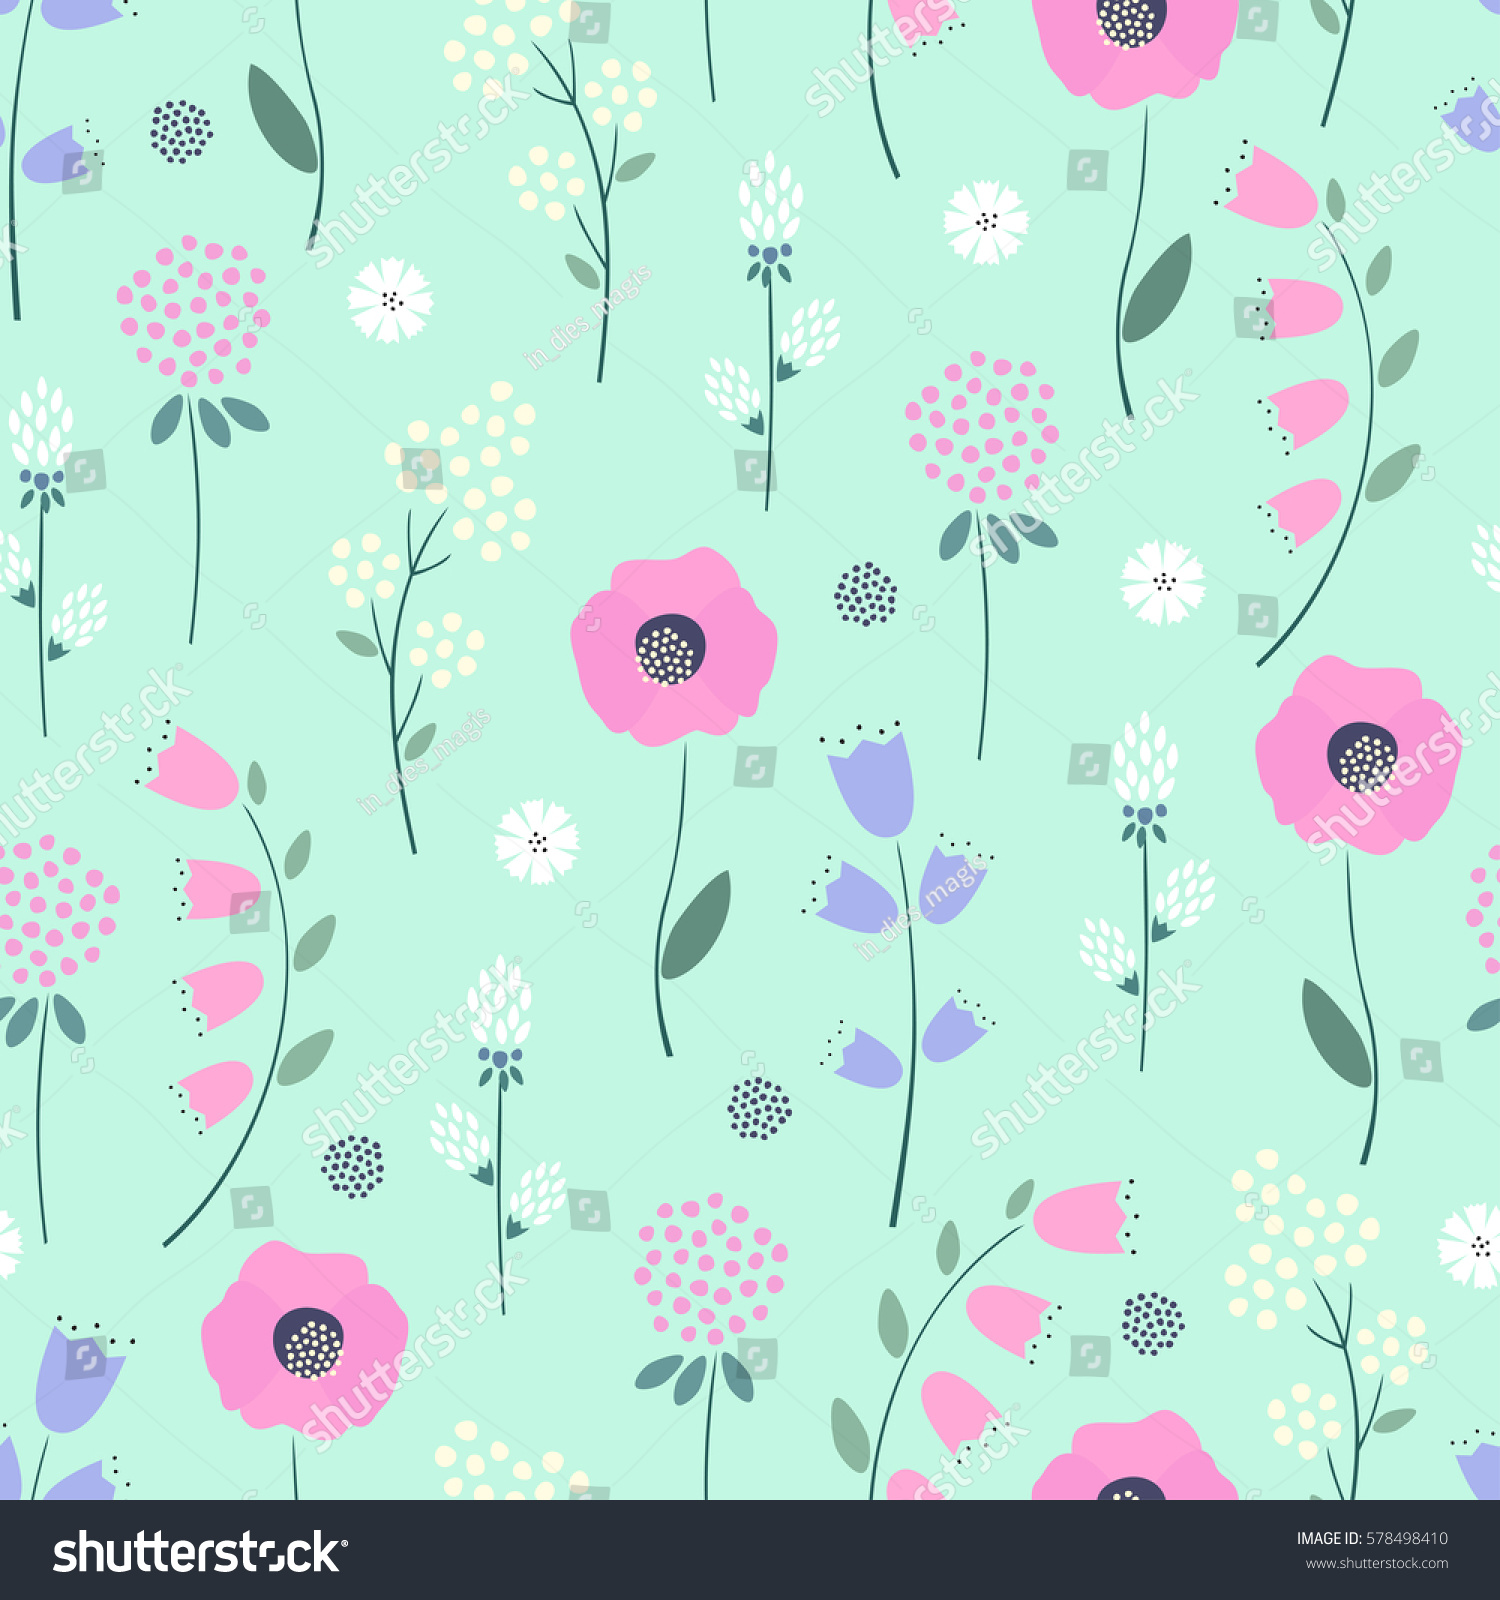 Floral Pattern On Mint Green Background Stock Vector Royalty Free